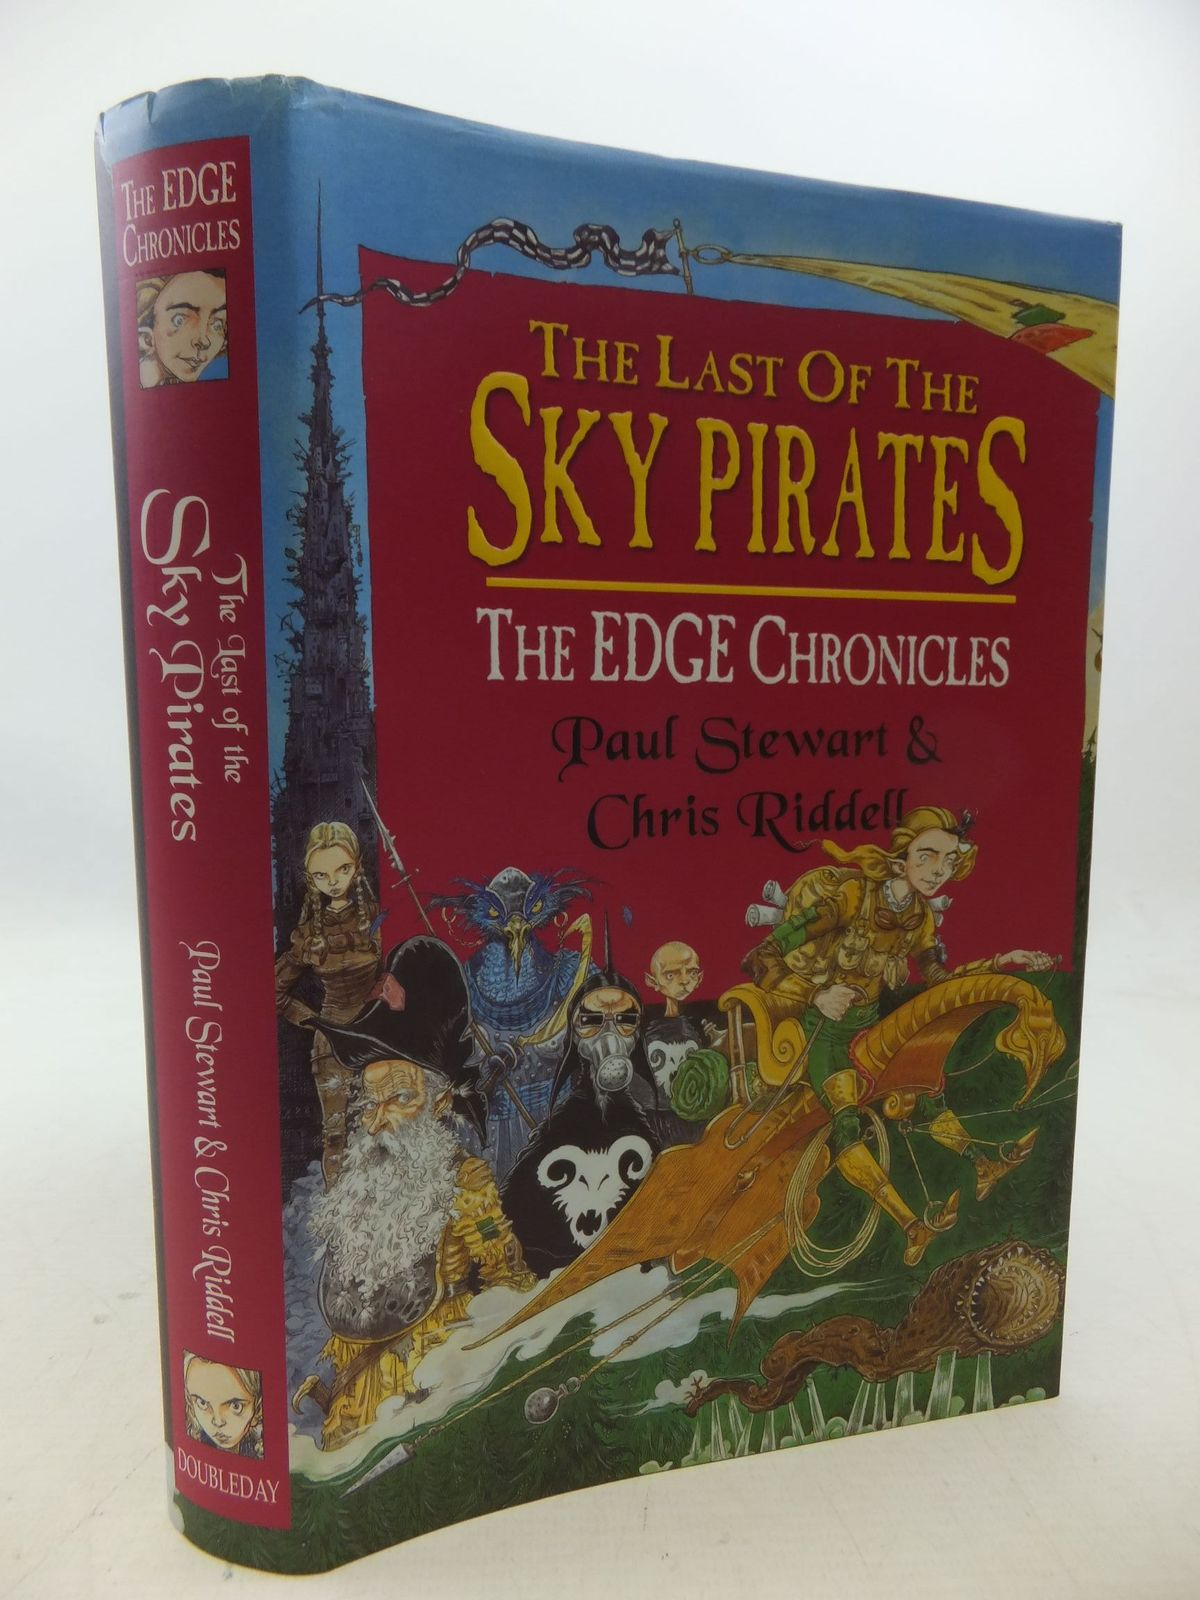 Photo of THE LAST OF THE SKY PIRATES written by Stewart, Paul illustrated by Riddell, Chris published by Doubleday (STOCK CODE: 1207924)  for sale by Stella & Rose's Books